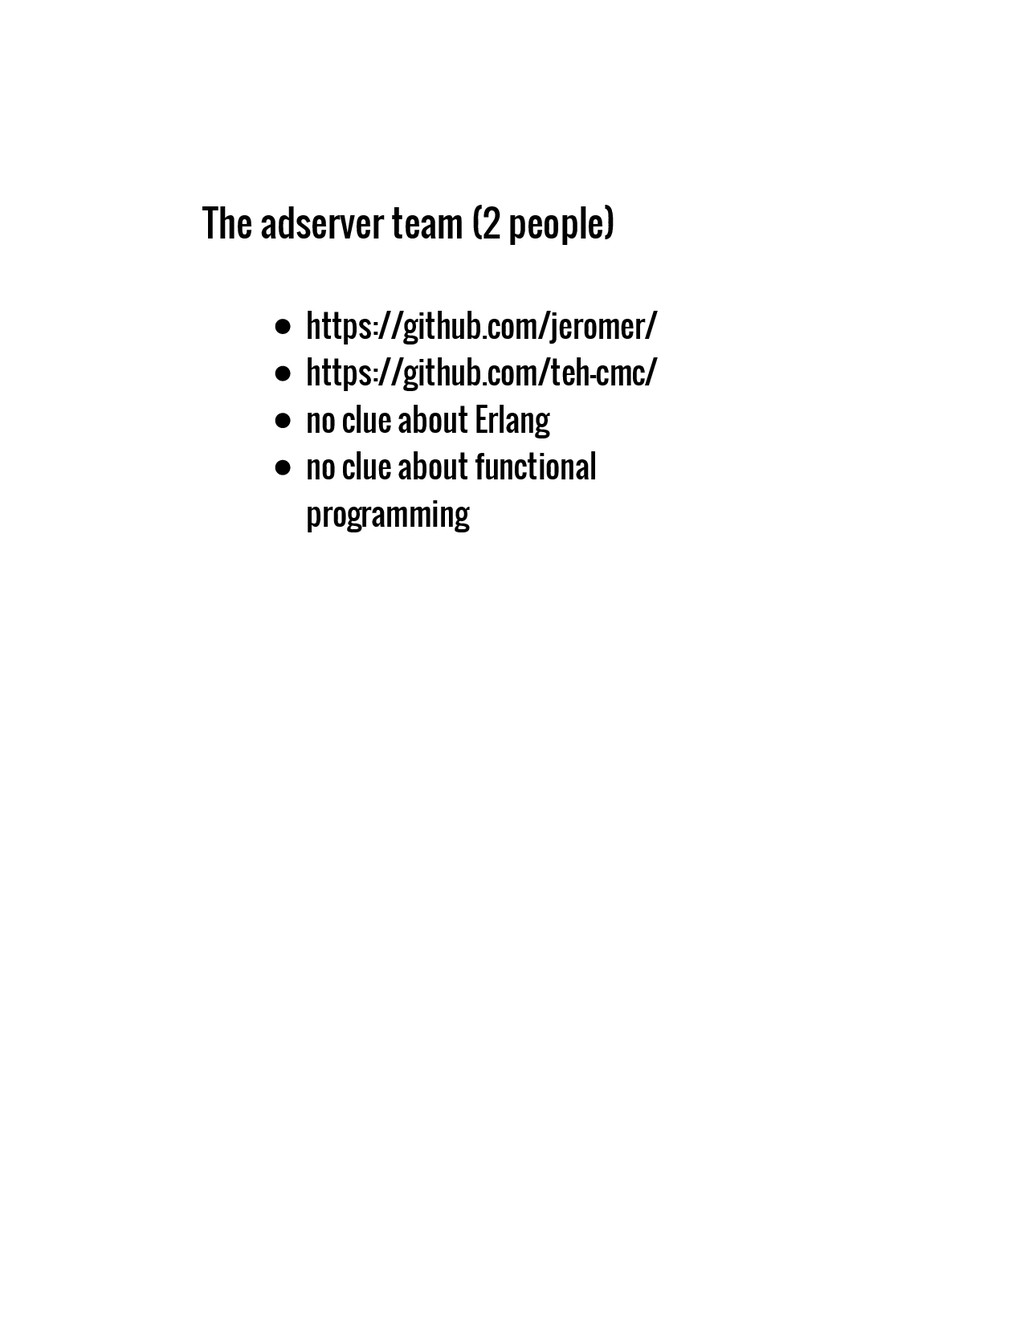 The adserver team (2 people) https://github.com...